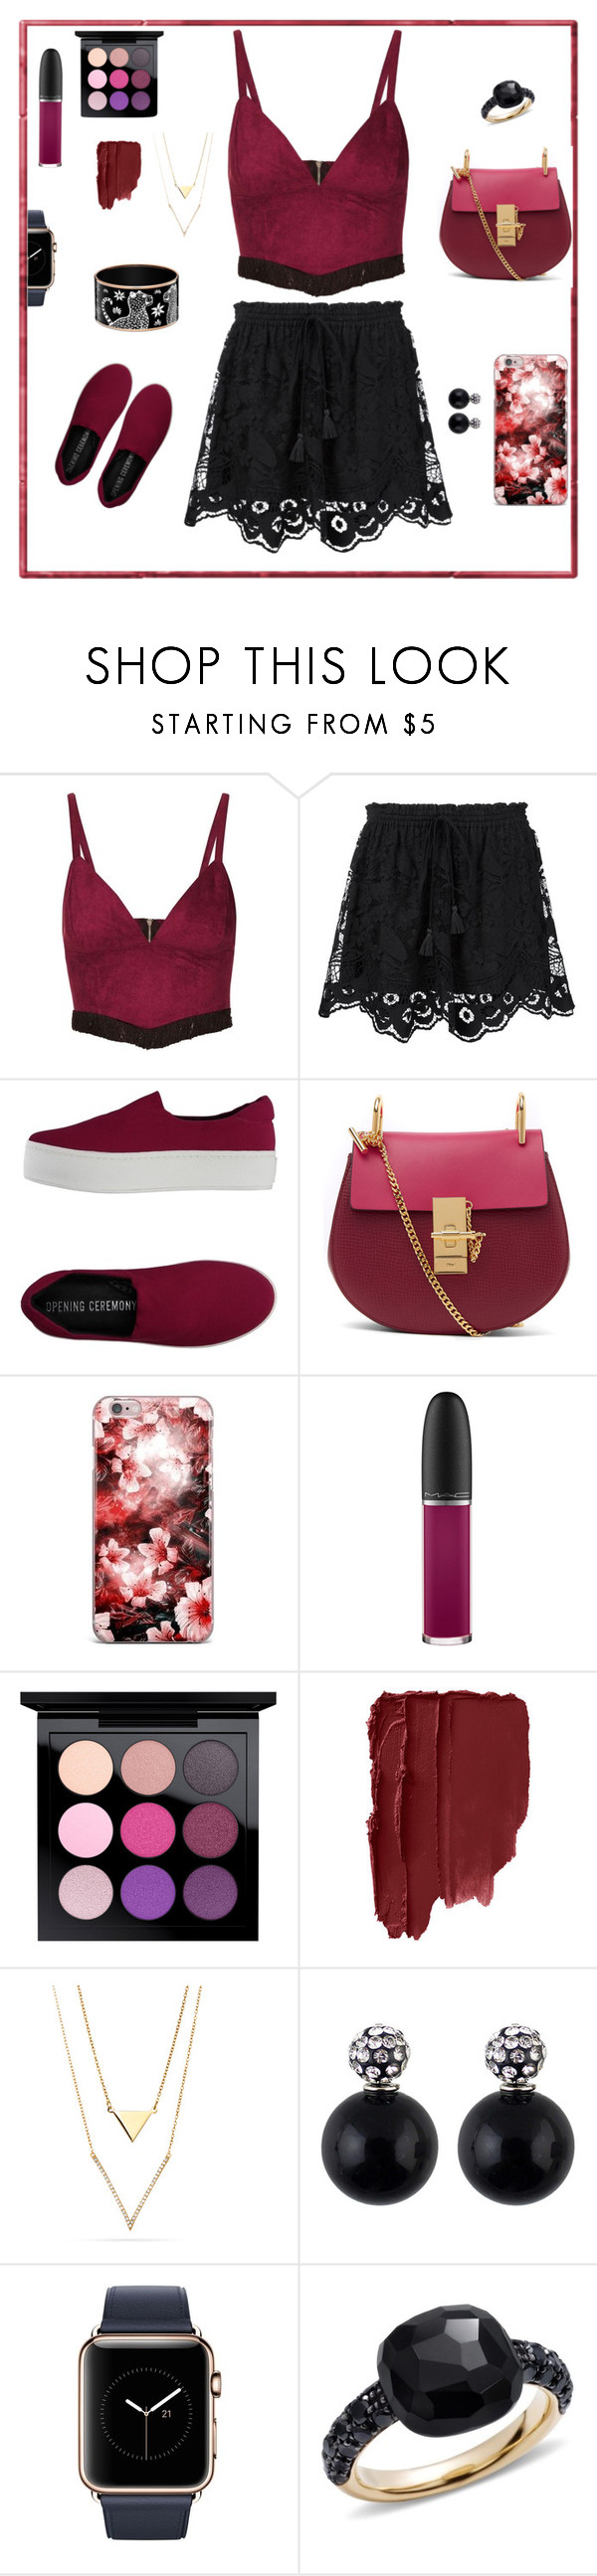 """""""(R)ed"""" by sanidaskrebo ❤ liked on Polyvore featuring Topshop, Chloé, Opening Ceremony, MAC Cosmetics and Pomellato"""